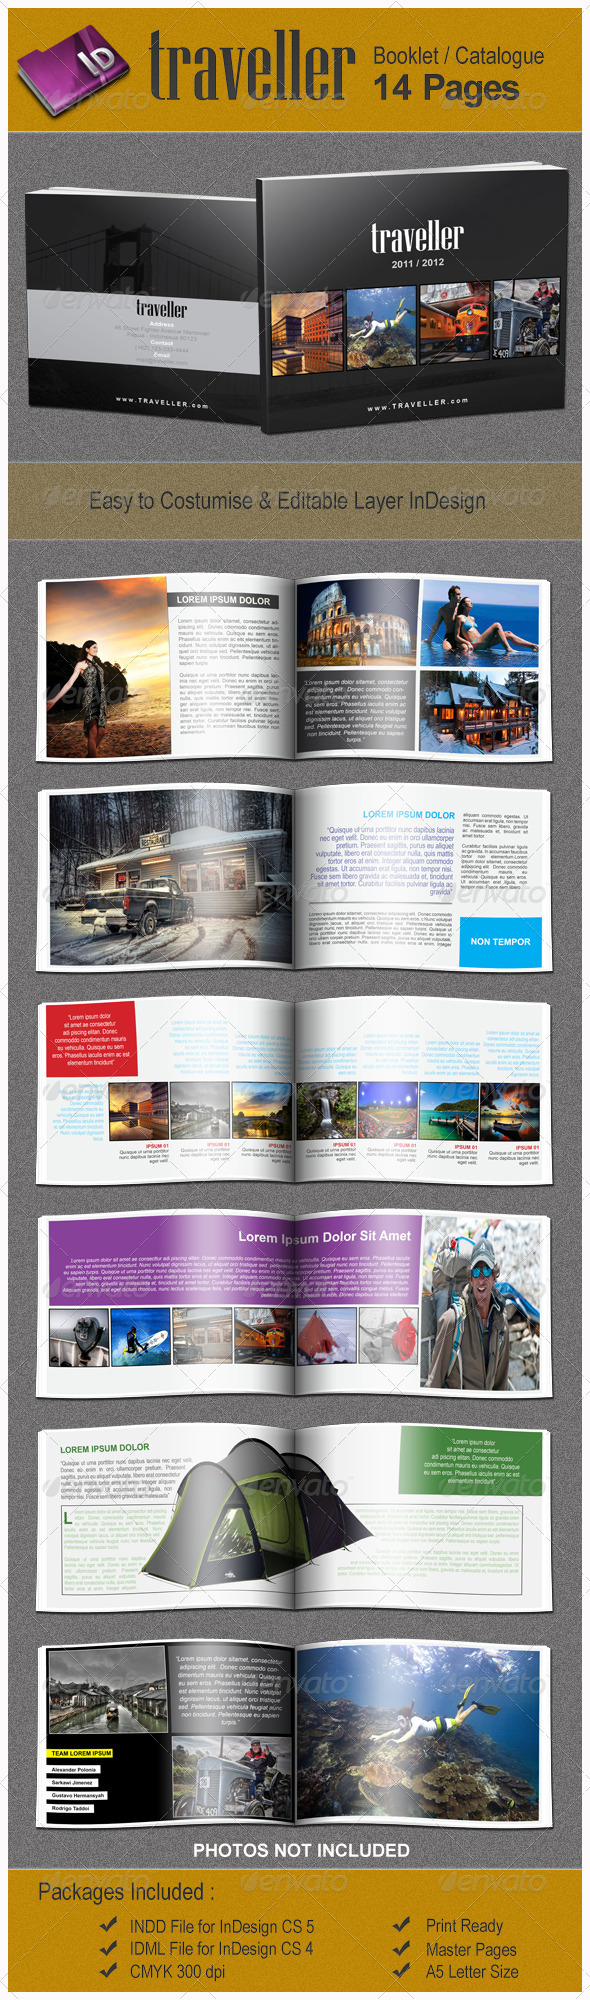 GraphicRiver Traveller Booklet Catalogue Template 1251785